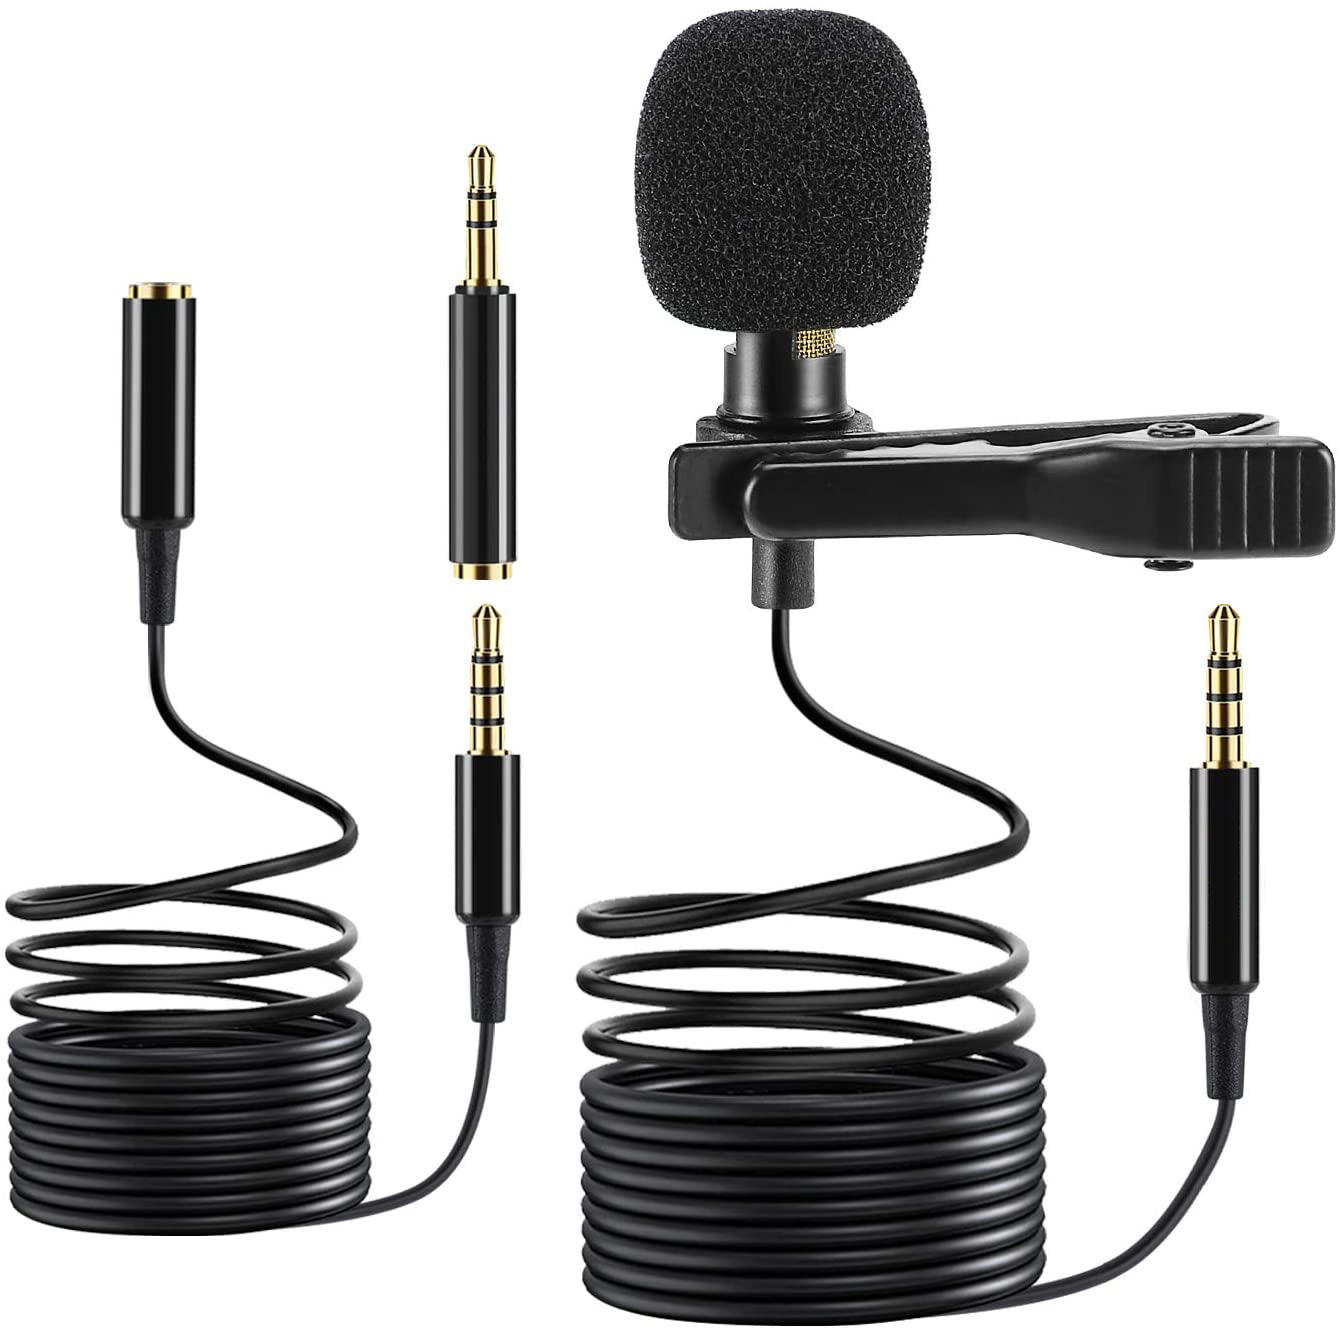 WIK Professional Wired Hands Free Mini Lapel Clip Lavalier Microphone For Iphone Teaching Live Broadcast Loudspeaker